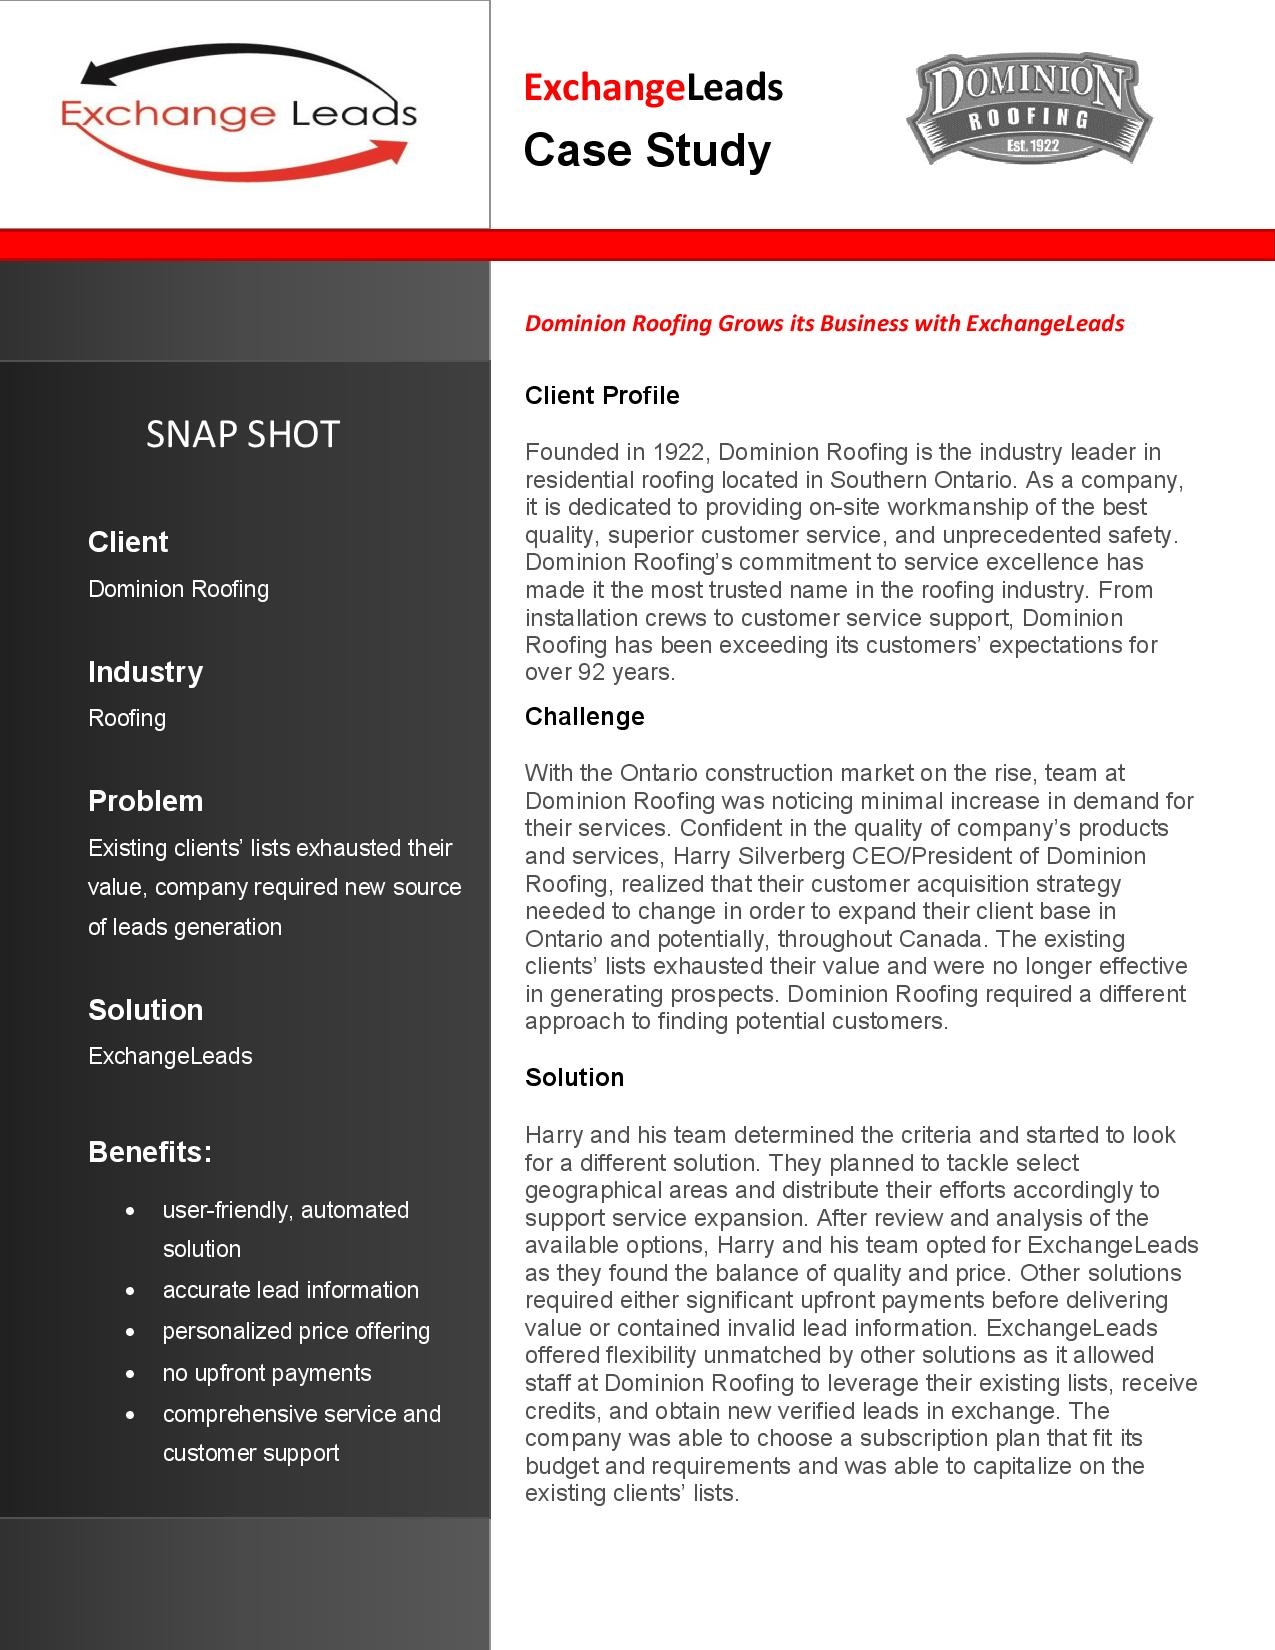 Case Study Exchangeleads (Domion Roofing) (1)-page-001